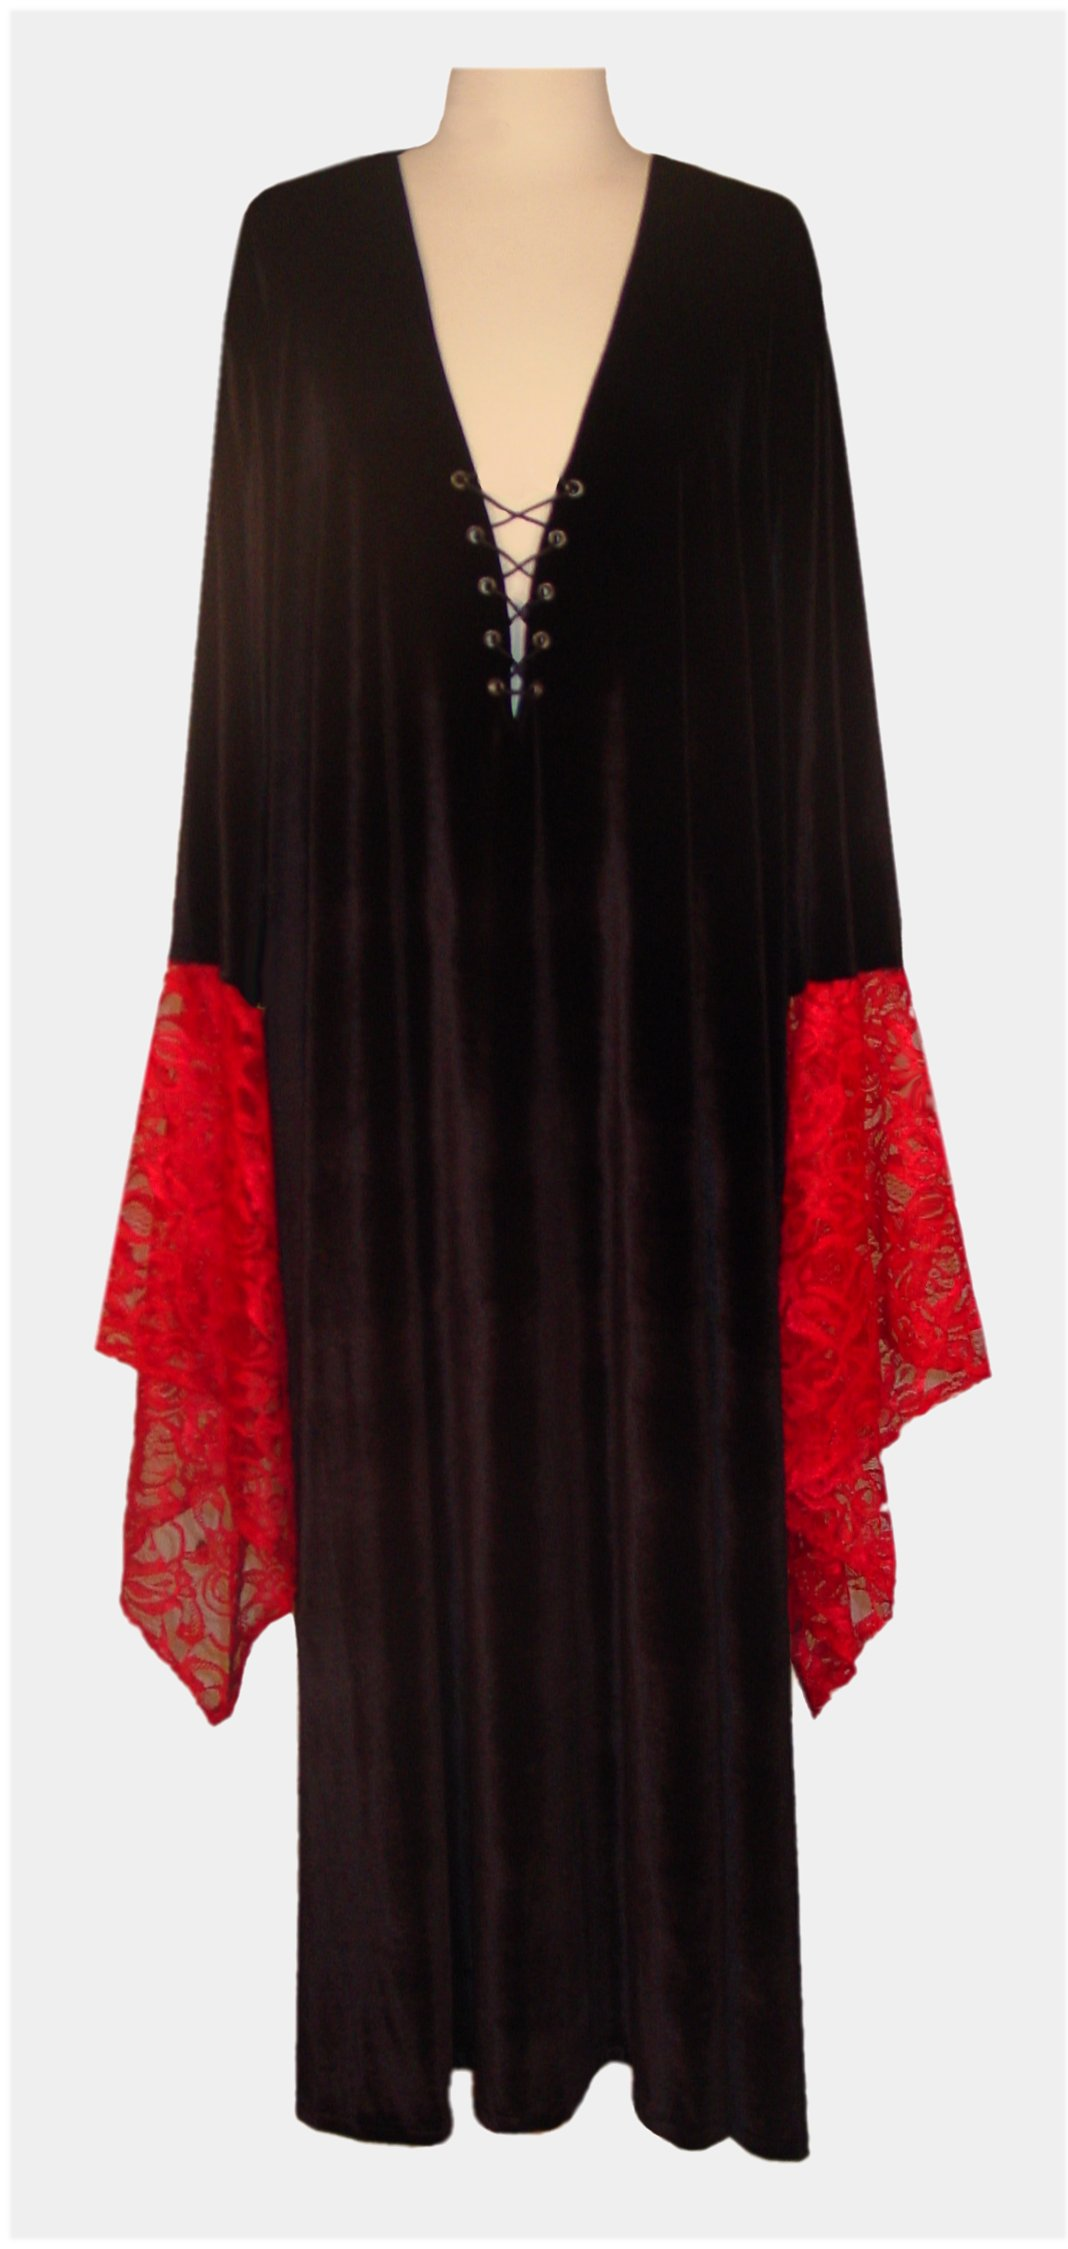 Sale Black Amp Red Gothic Lacey Lace Up Velvet Plus Size Dress Or Shirt Supersize Halloween